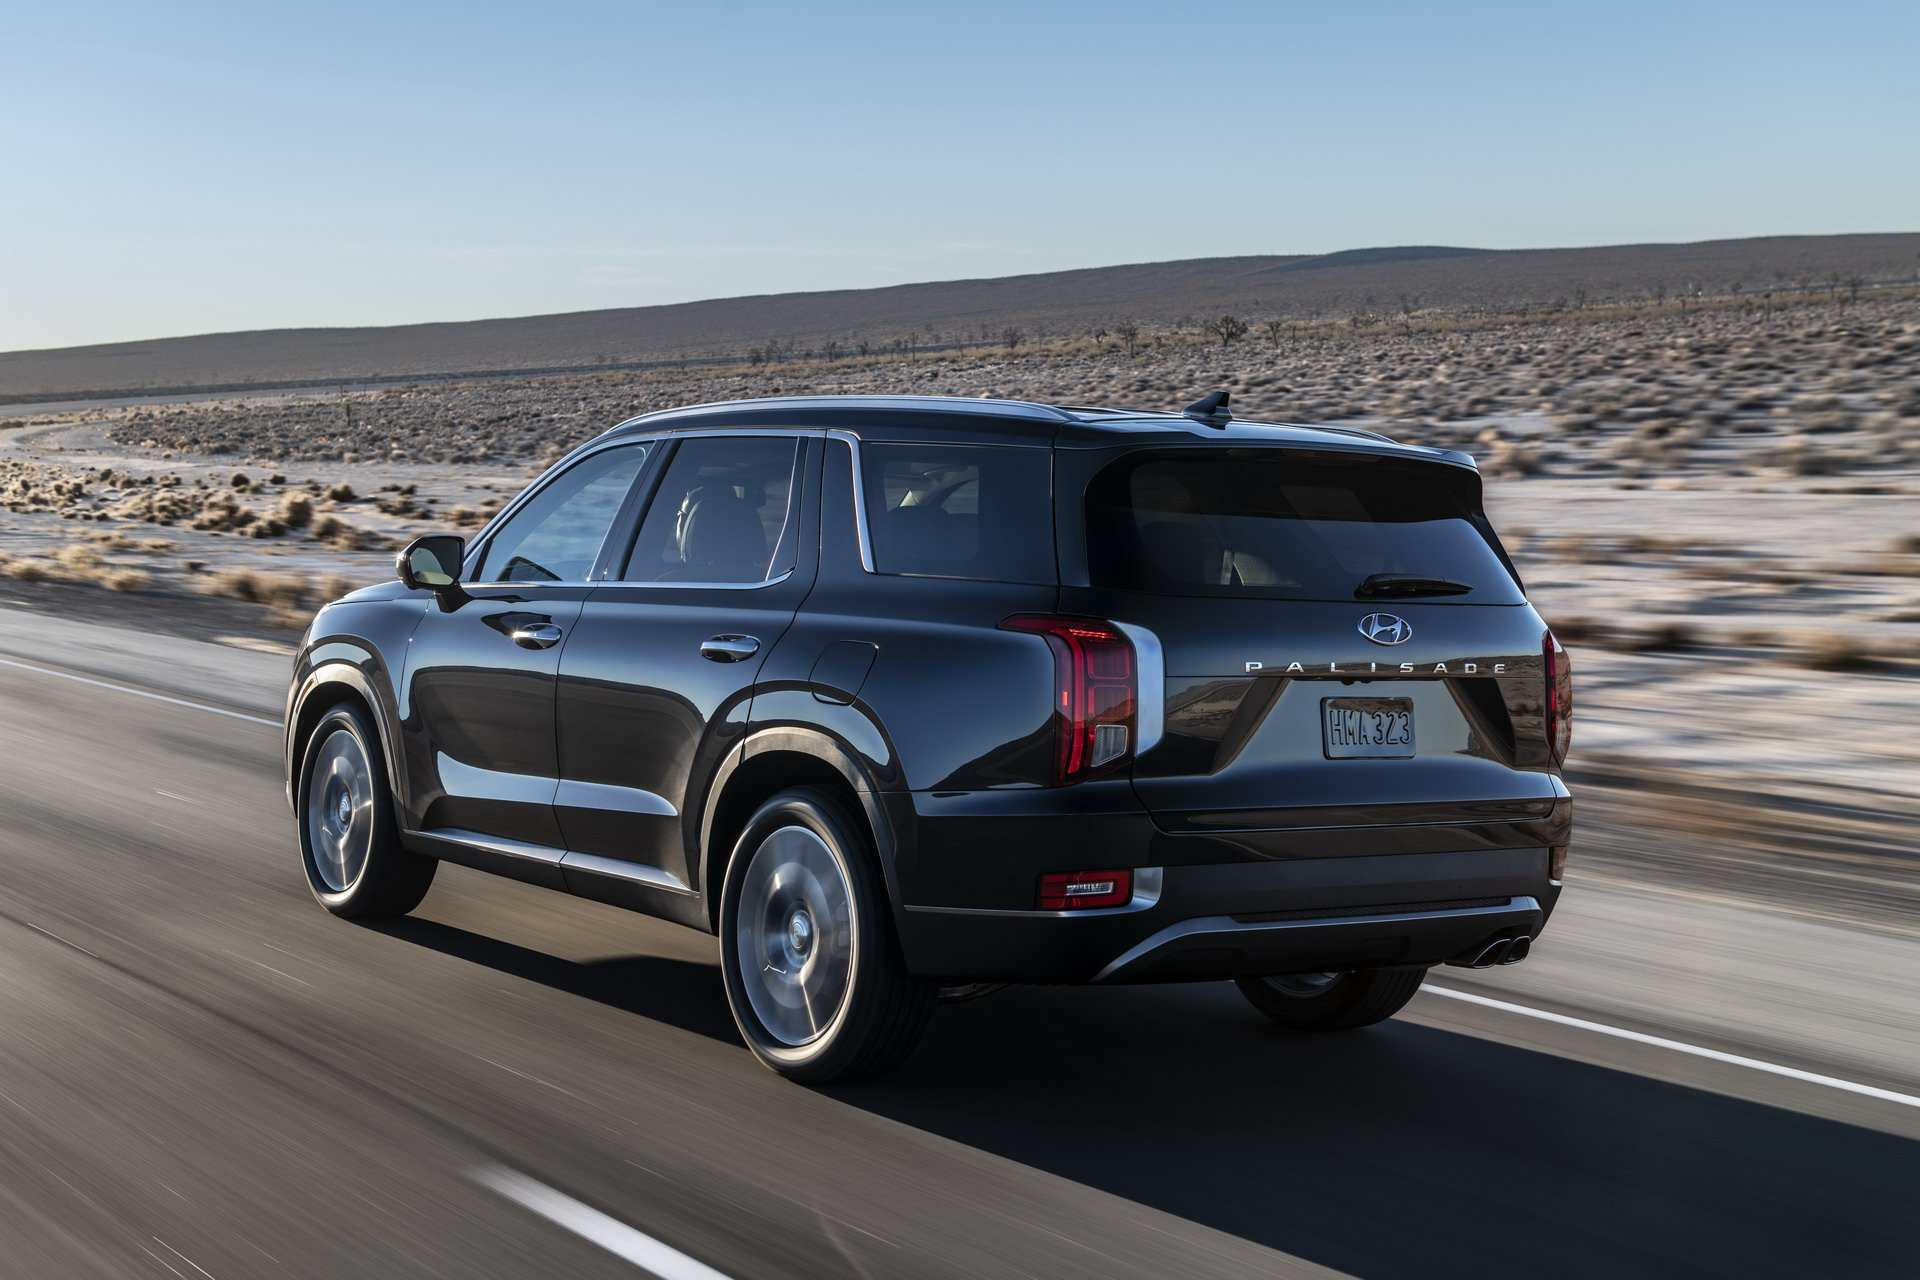 98 Gallery of Cost Of 2020 Hyundai Palisade Spy Shoot with Cost Of 2020 Hyundai Palisade